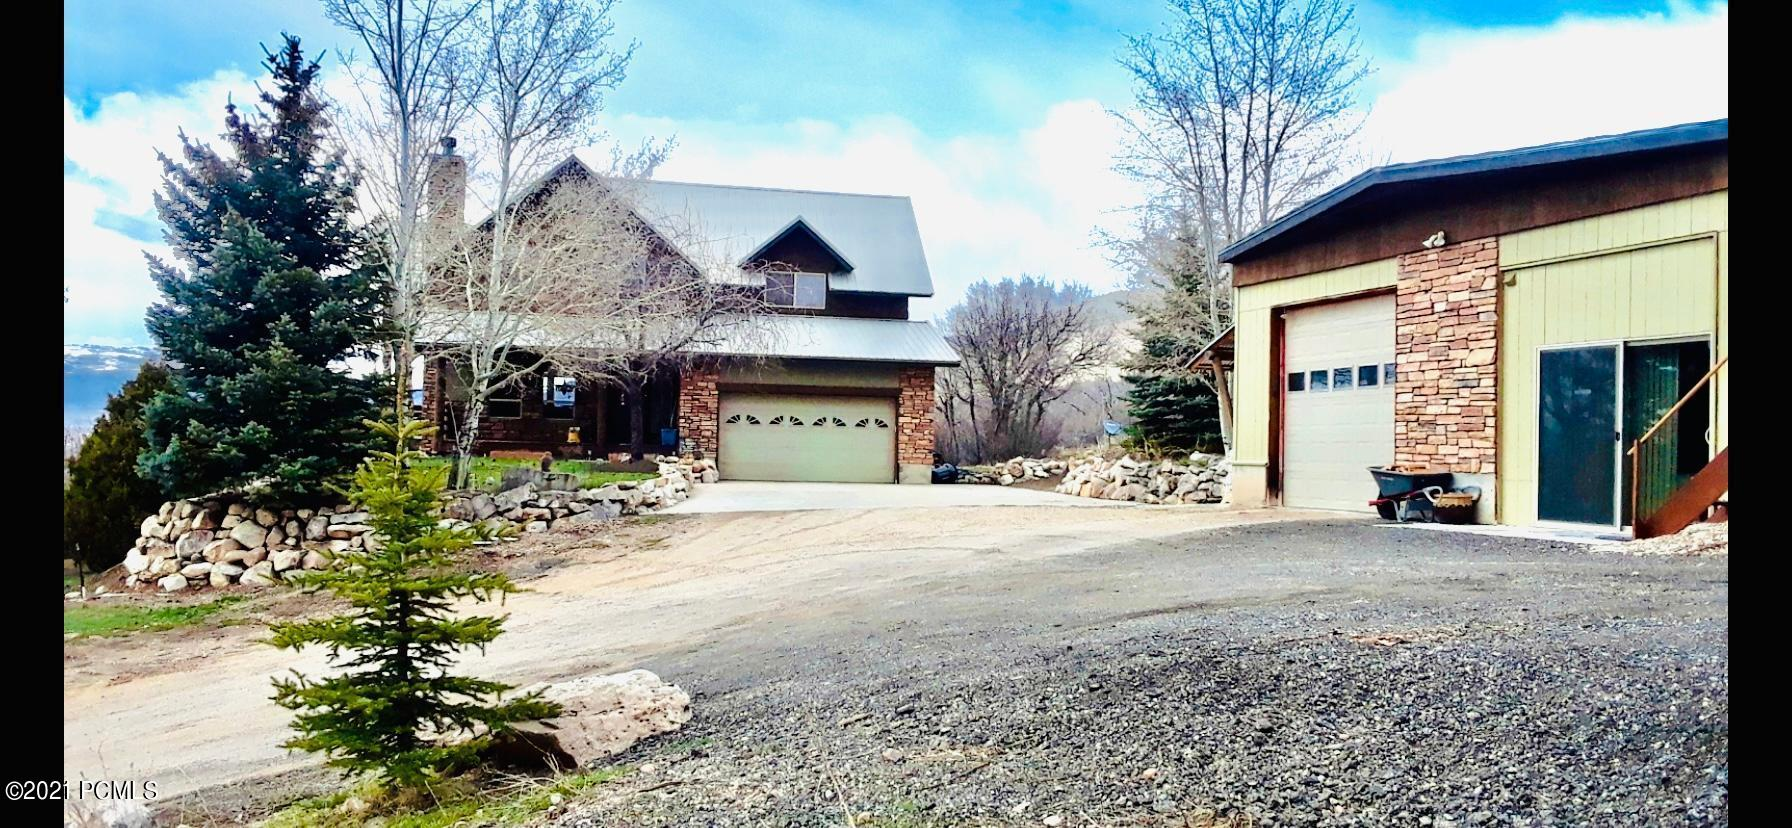 1716 Splendor Valley Road, Kamas UT 84036